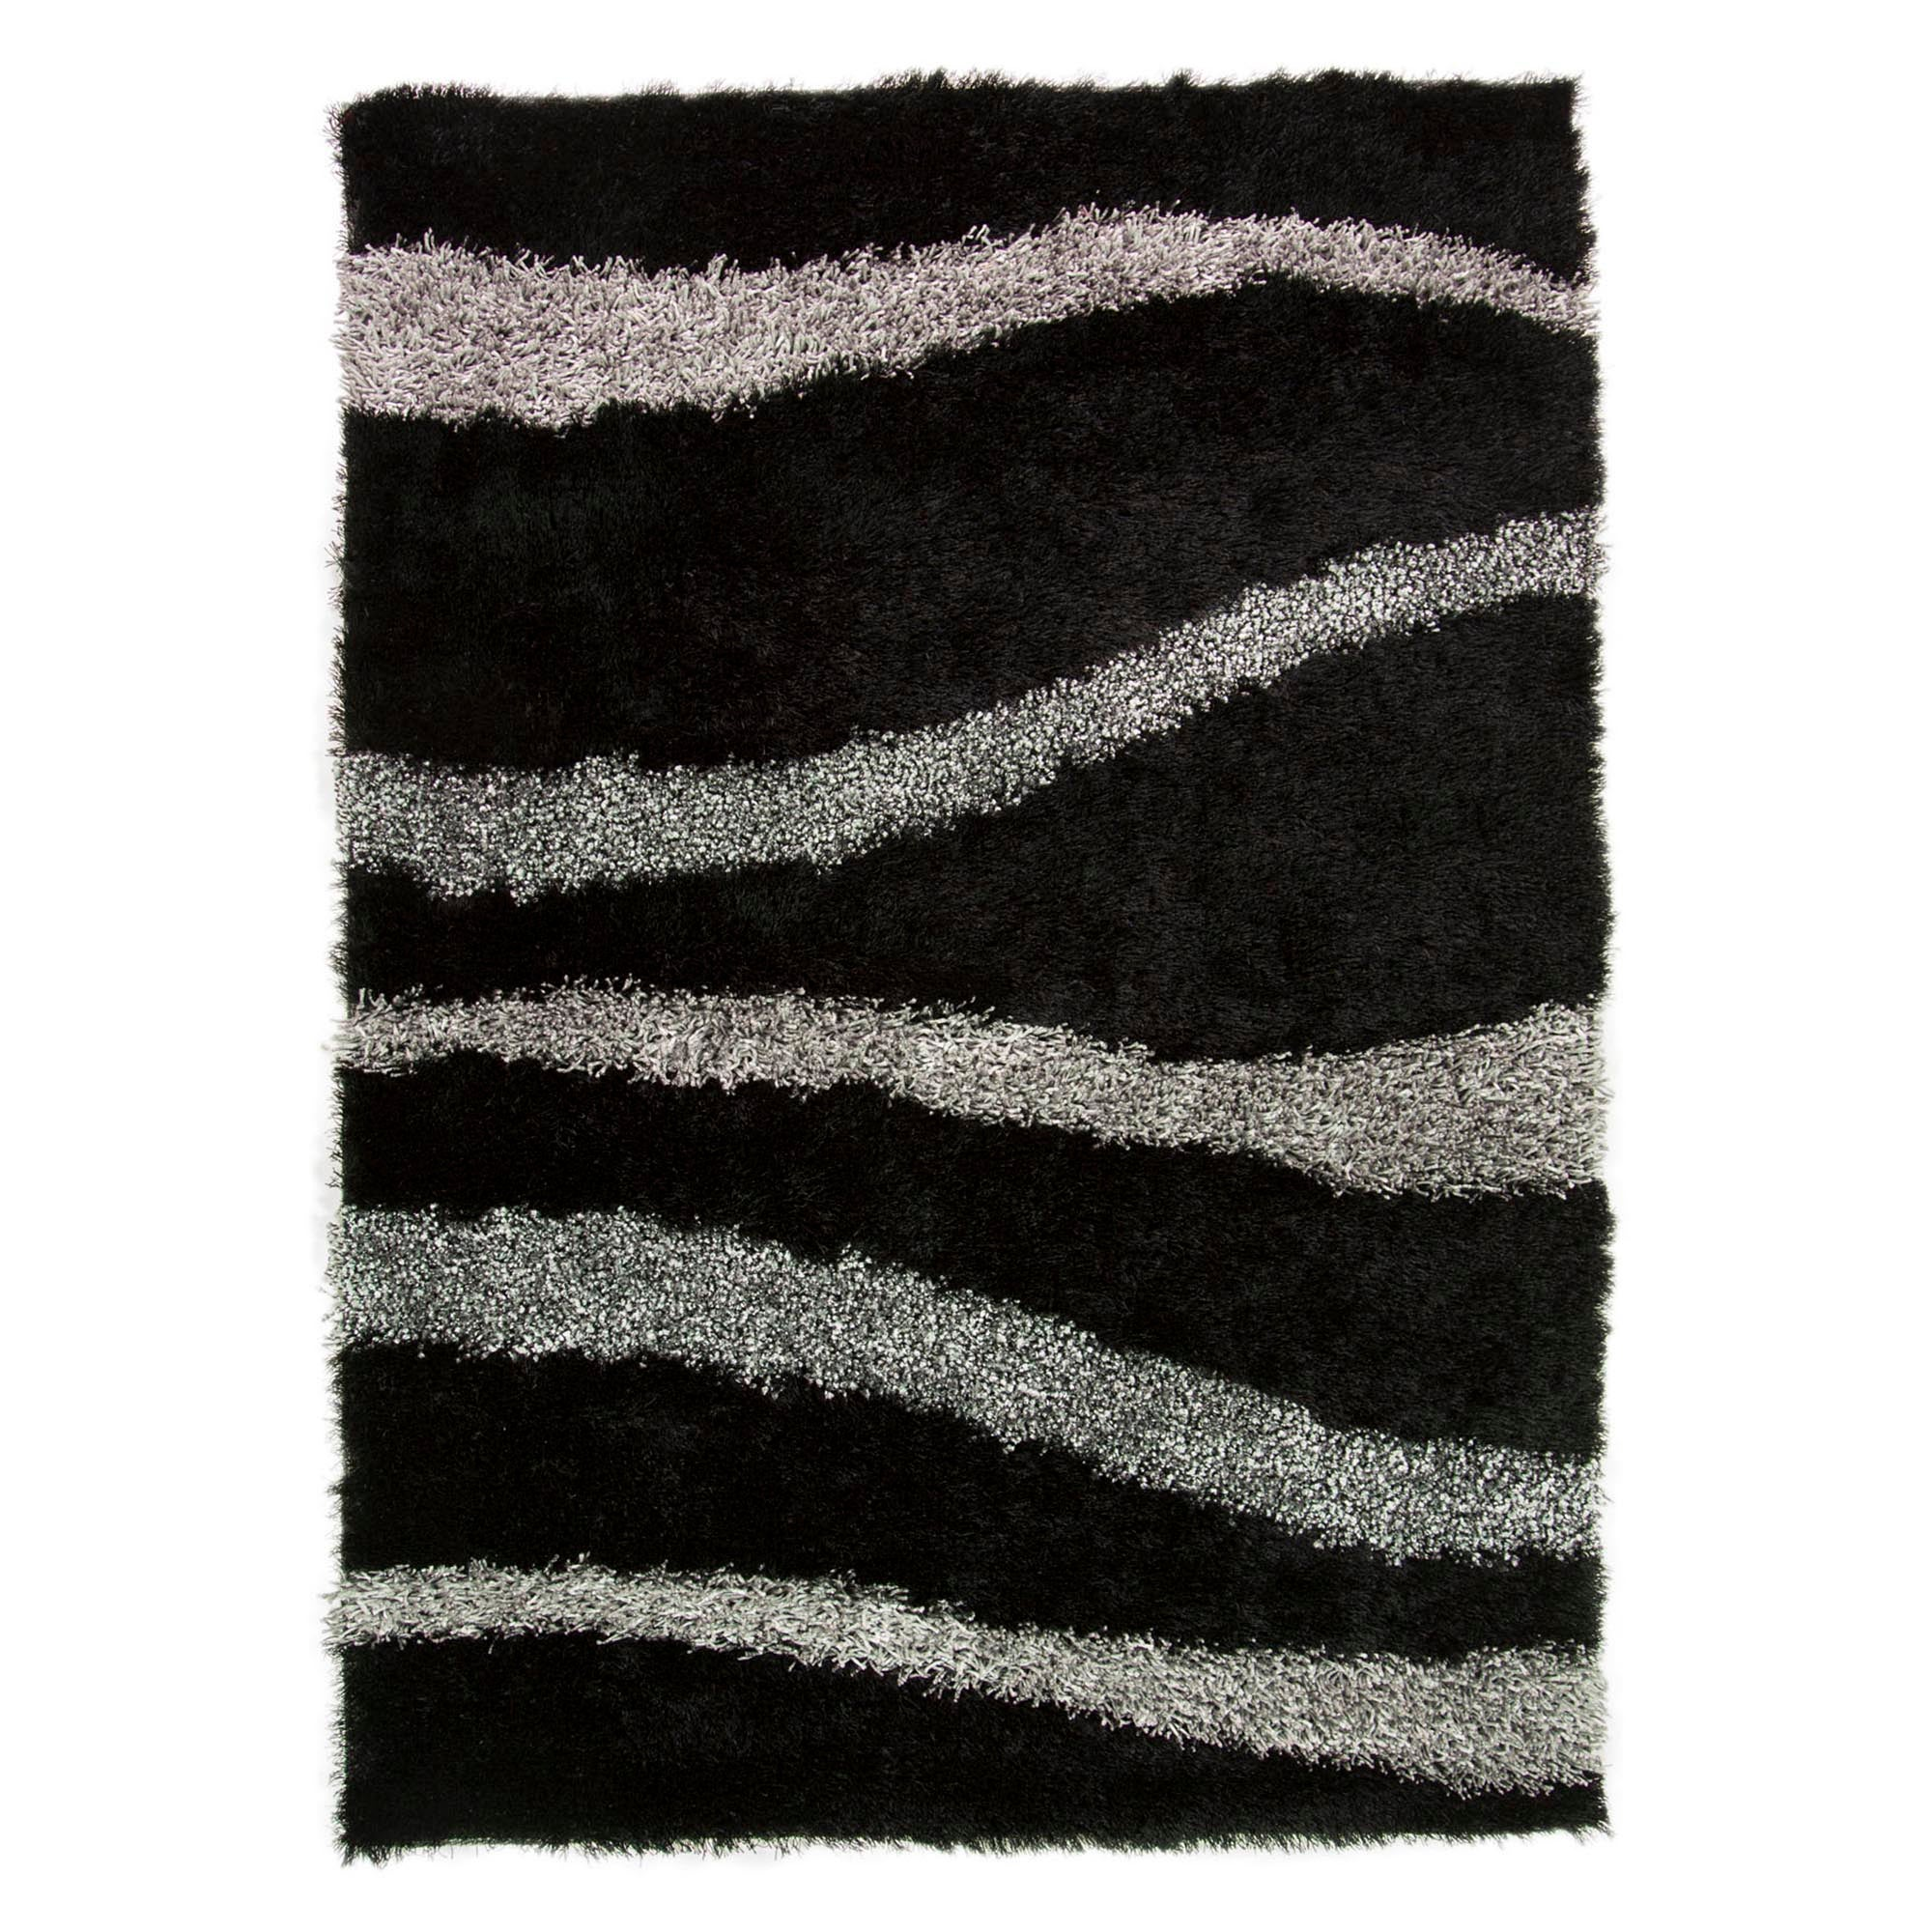 Photo of Black vibe shaggy rug black